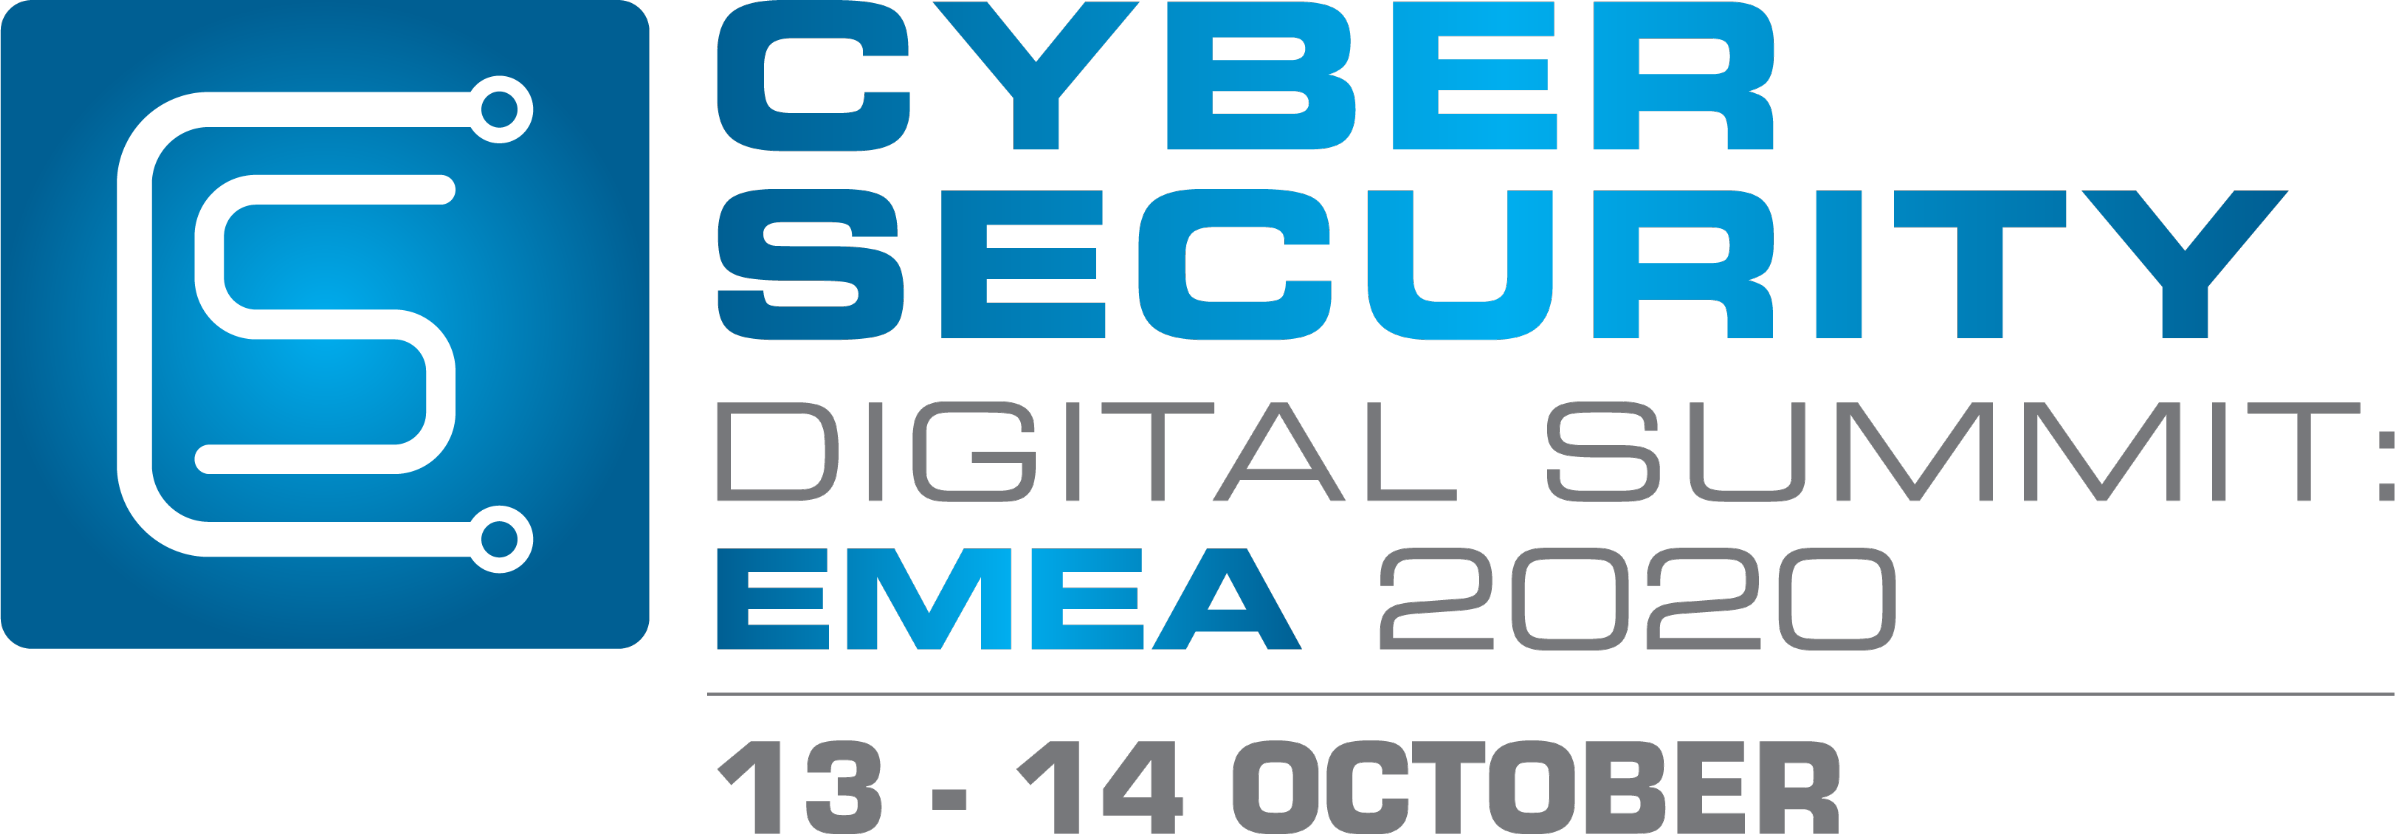 Cyber Security Digital Summit EMEA